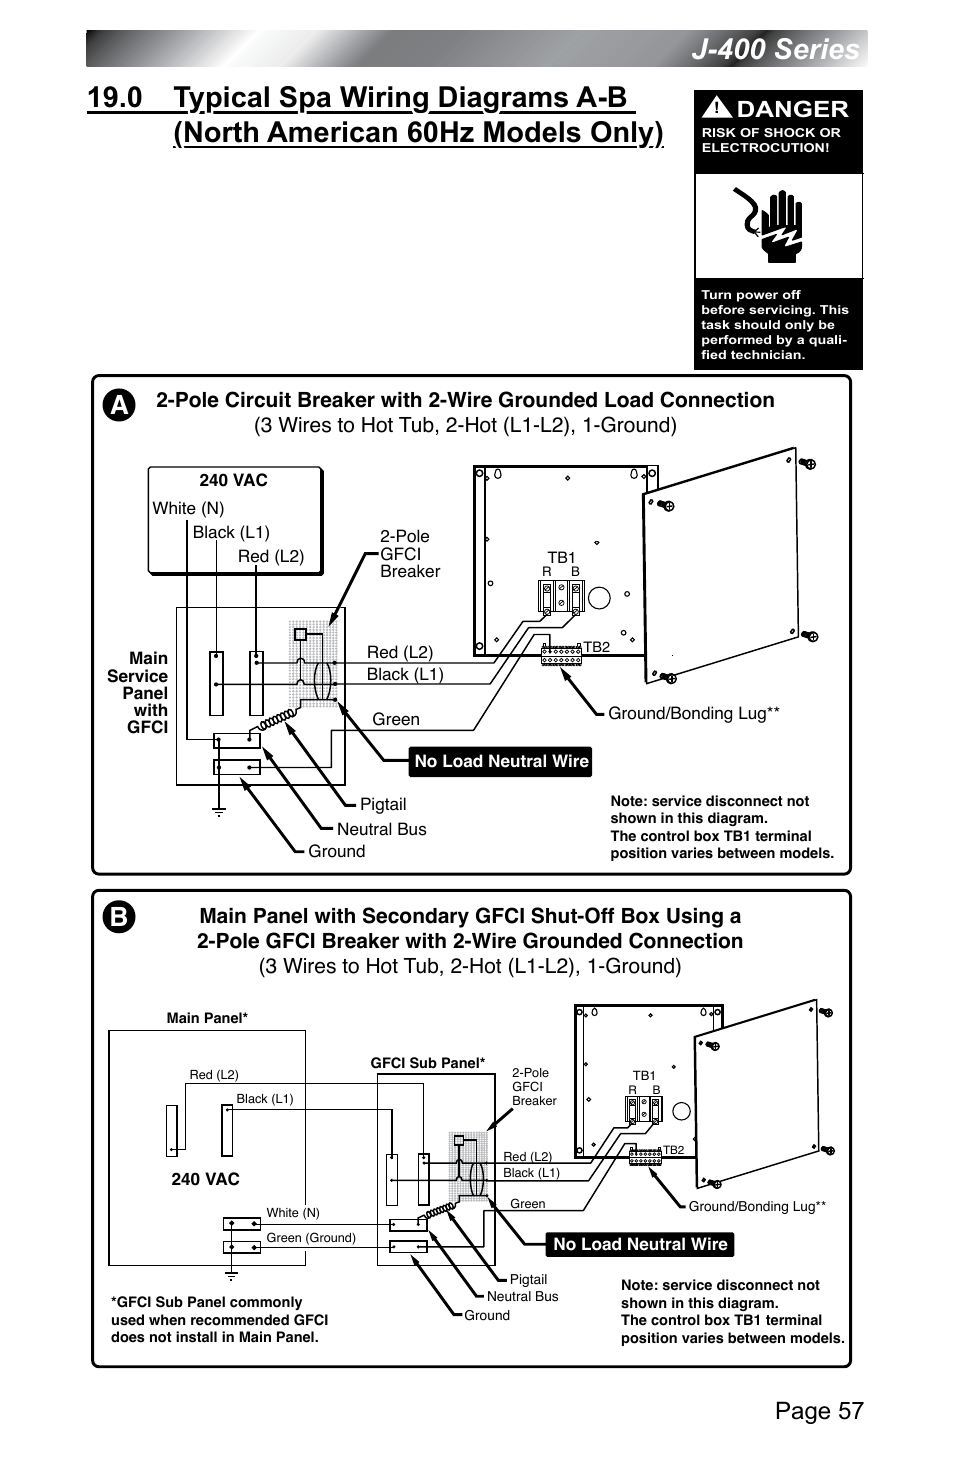 attractive raven cable wiring diagrams 115 0171 460 mold simple rh lovetreatment us Raven 450 Pinout Wiring Semi Trailer Wiring Diagram